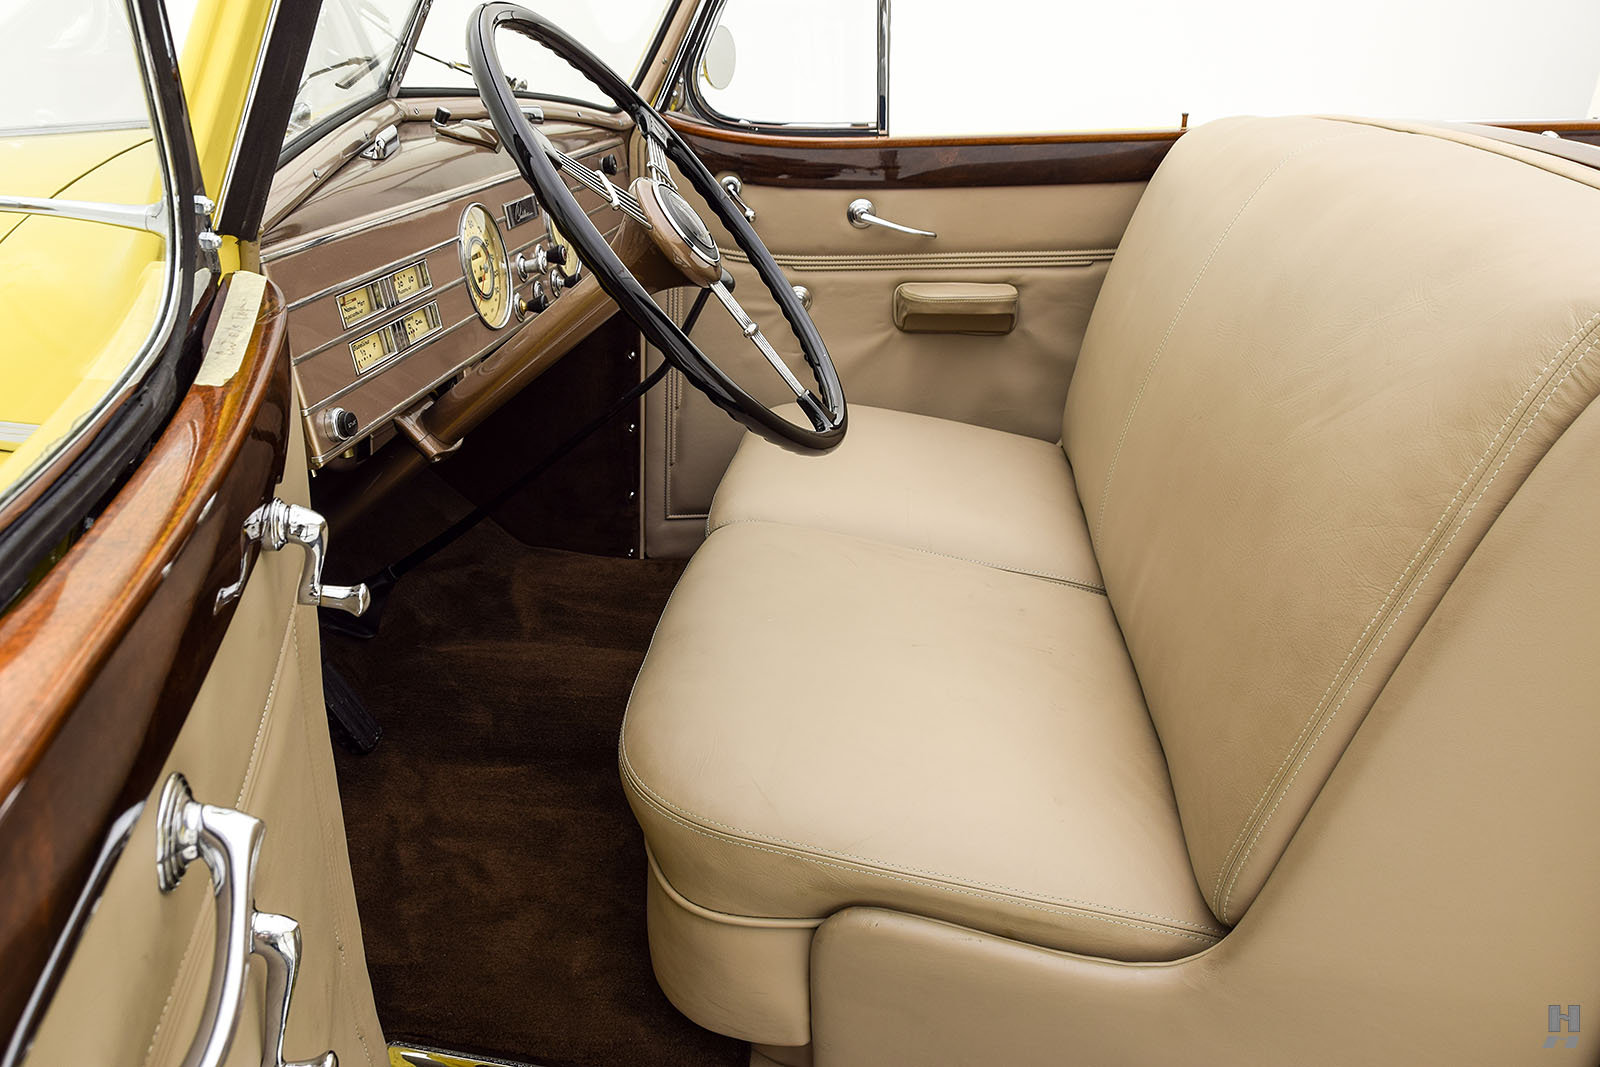 1937 CADILLAC SERIES 75 CONVERTIBLE SEDAN For Sale (picture 3 of 6)